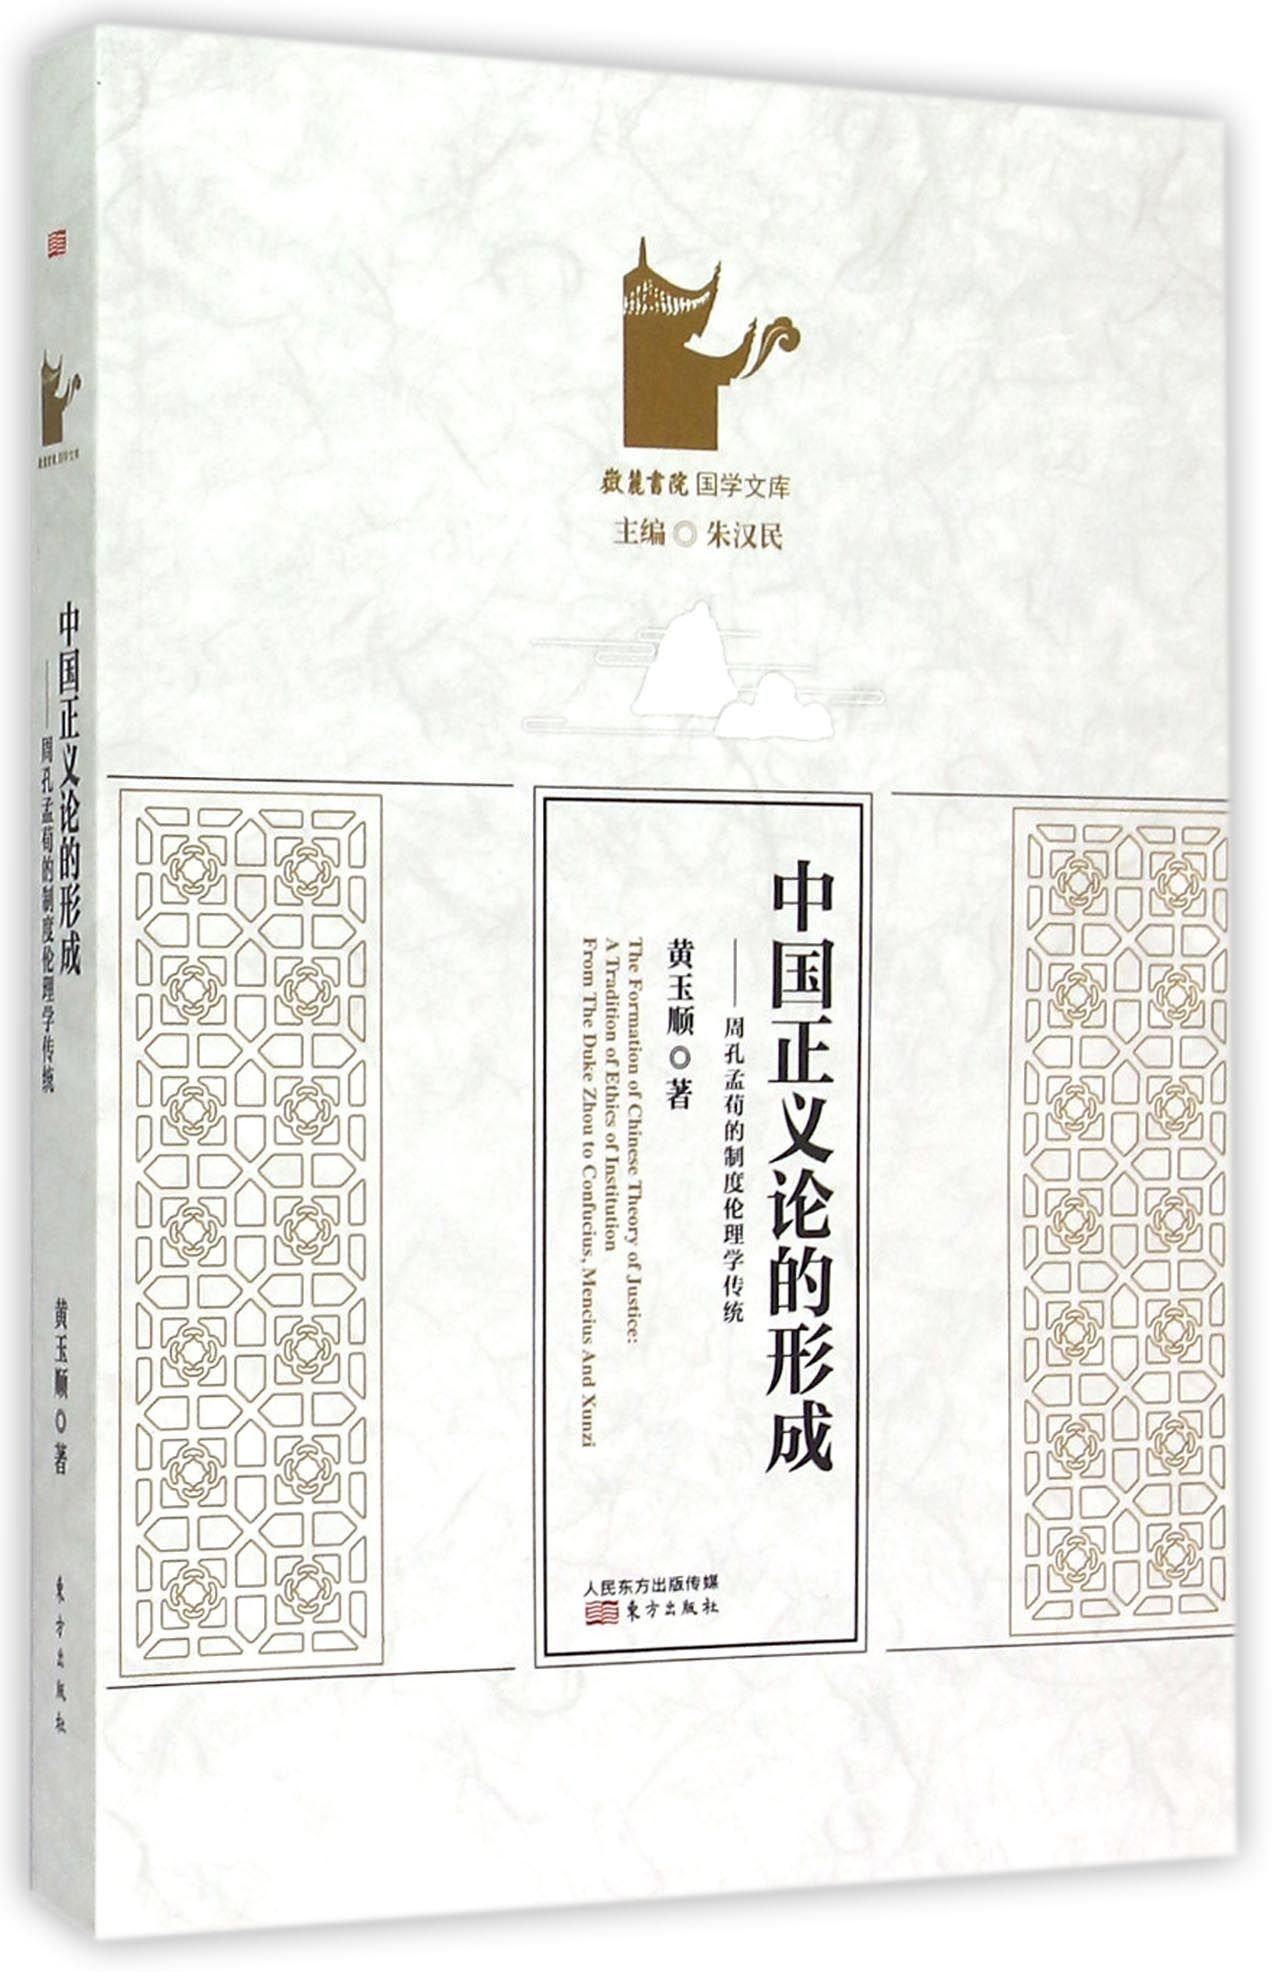 The Formation of Chinese Theory of Justice: The Institutional Ethics Tradition of the Duke of Zhou, Confucius, Menci, and Xuncius (Chinese Edition) pdf epub